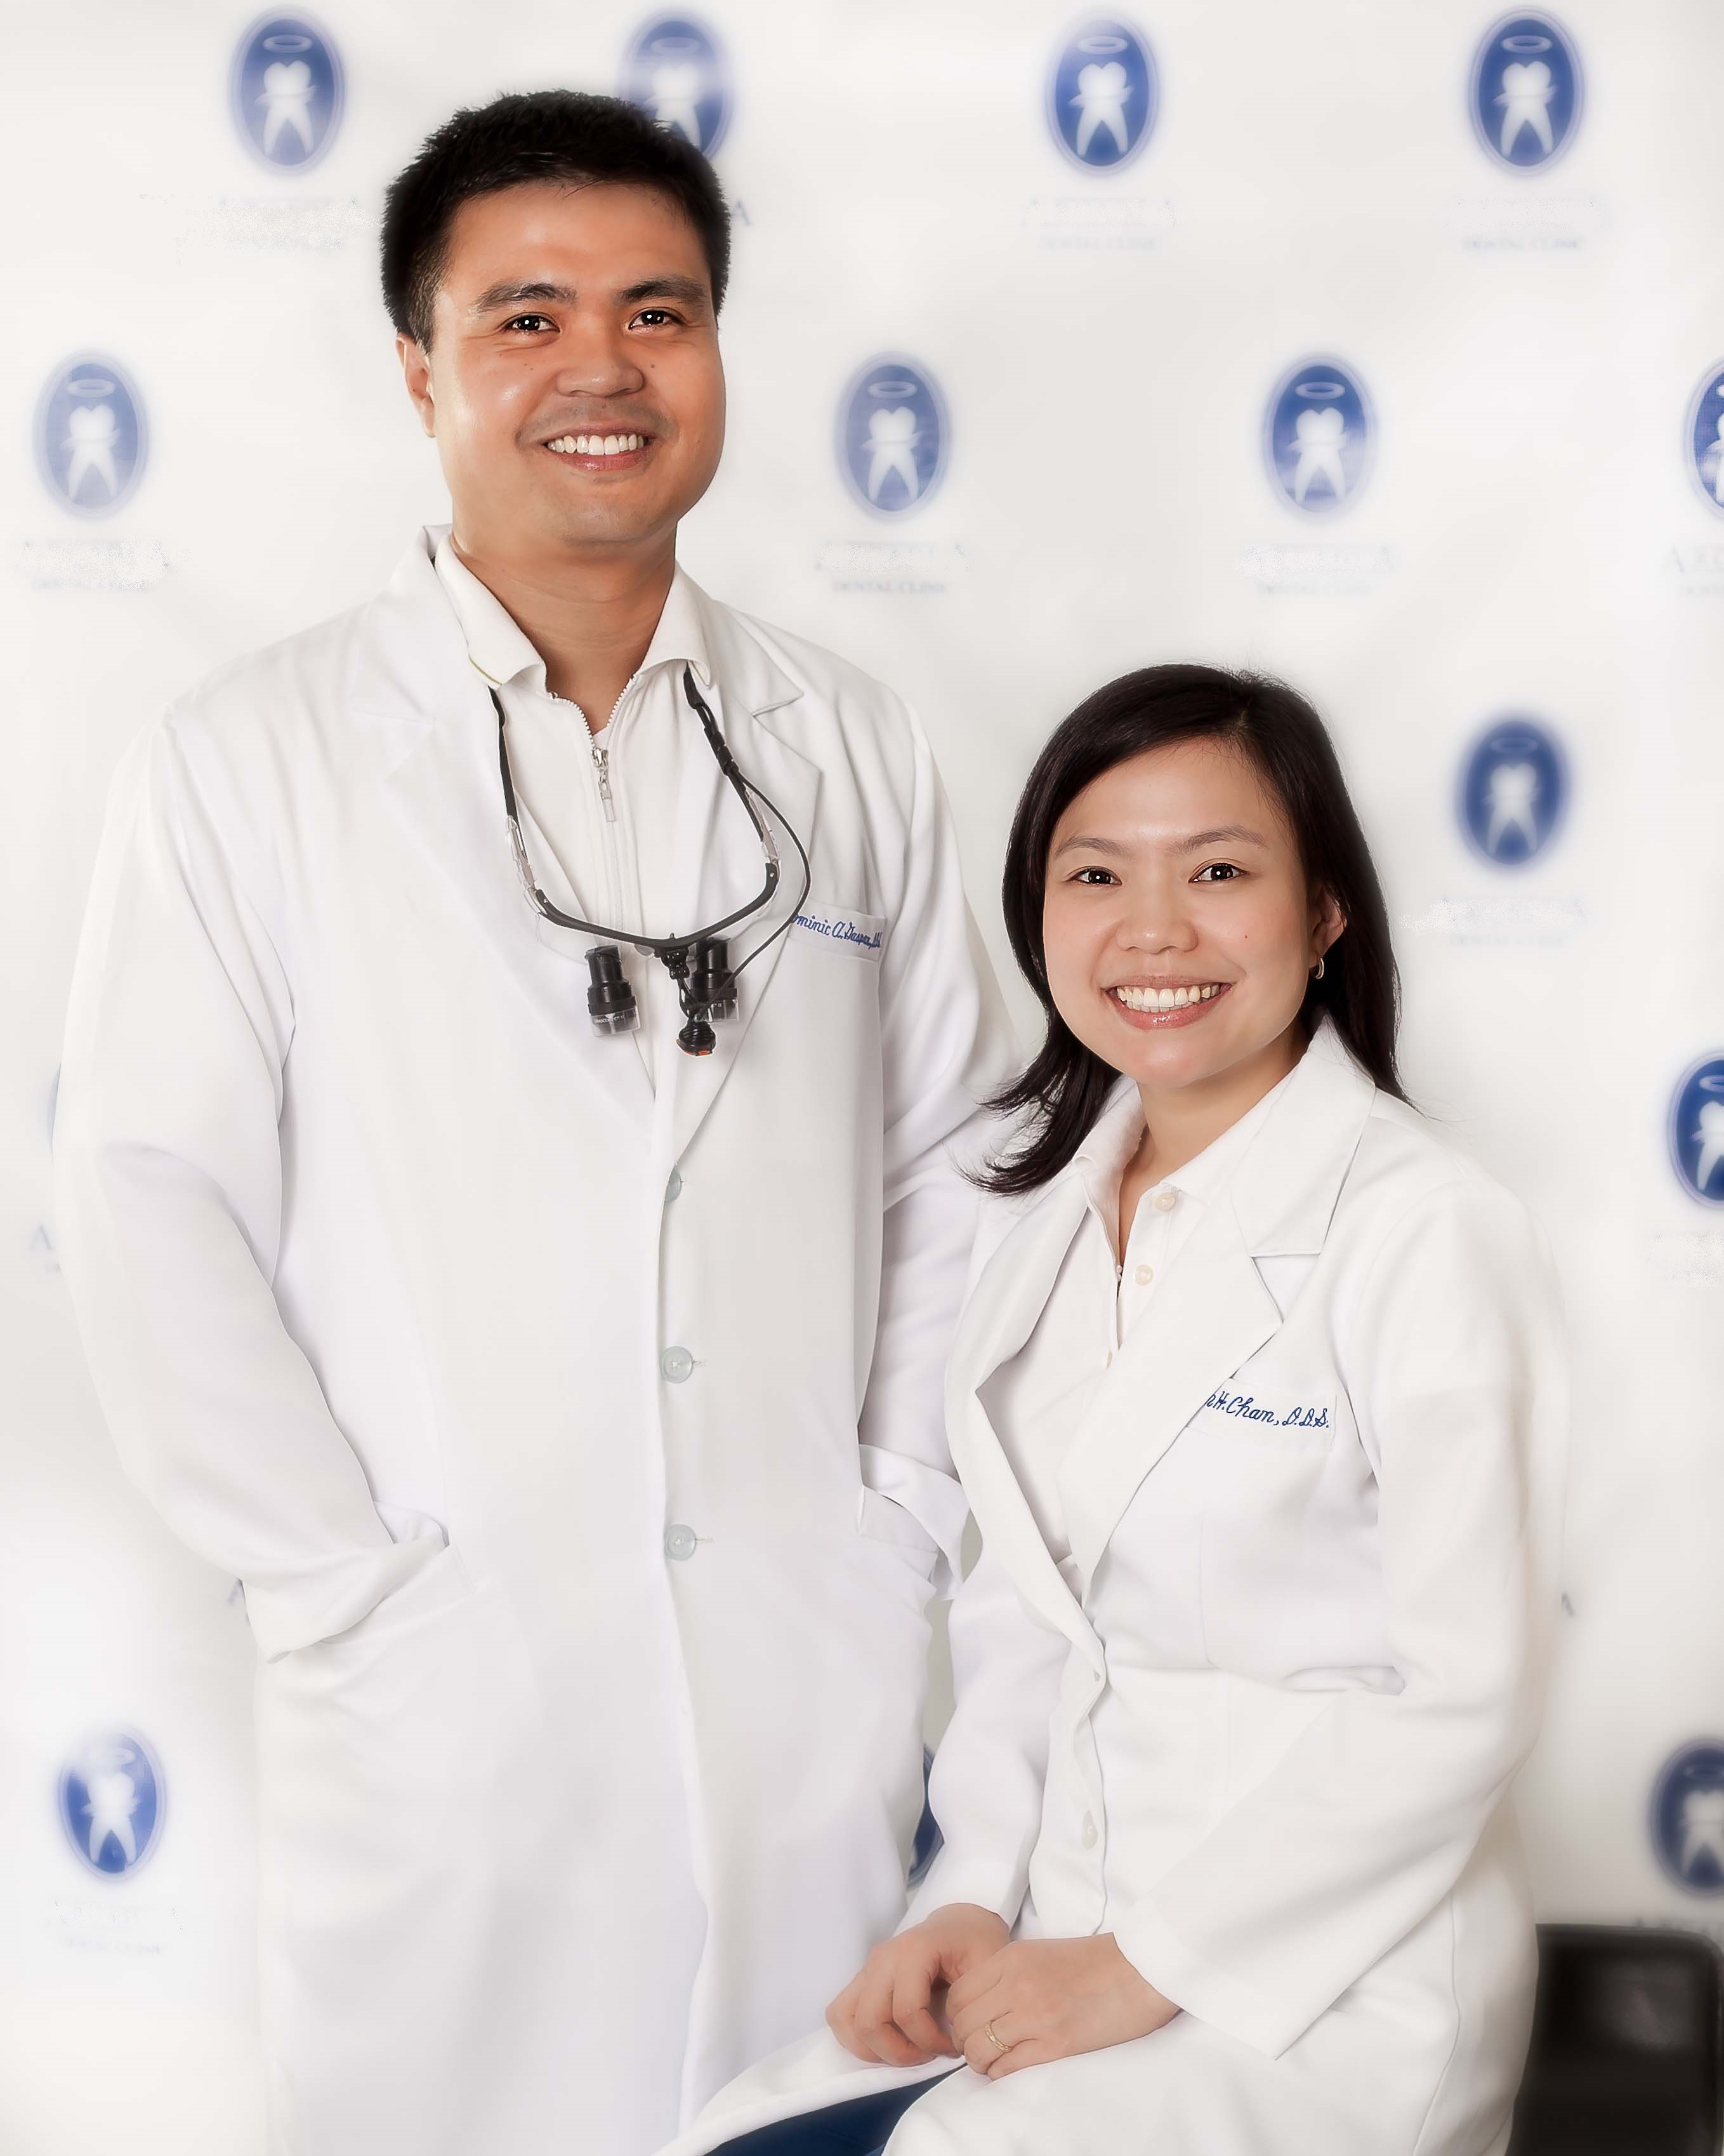 Dominic Gaspar DDS and Evelyn Chan DDS